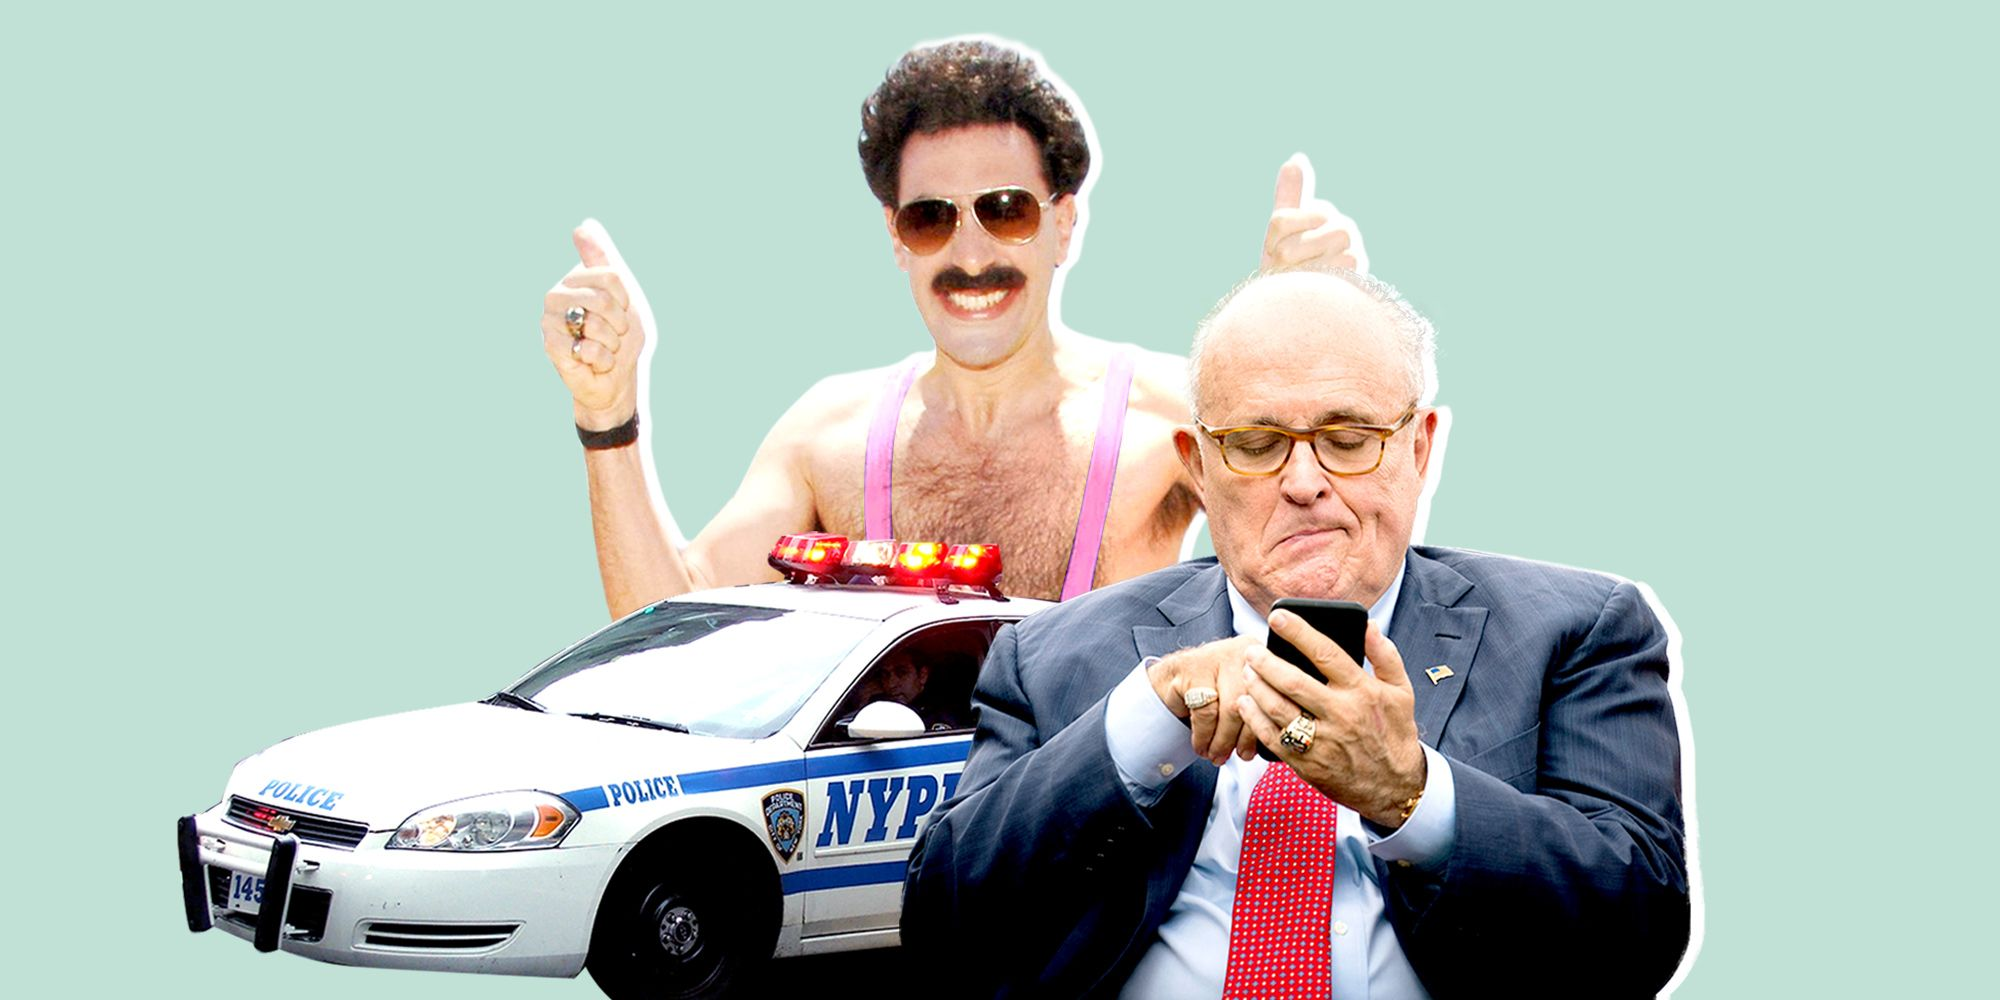 Sacha Baron Cohen Says He Was 'Quite Concerned' For His Co-Star During the Rudy Giuliani Scene in Borat